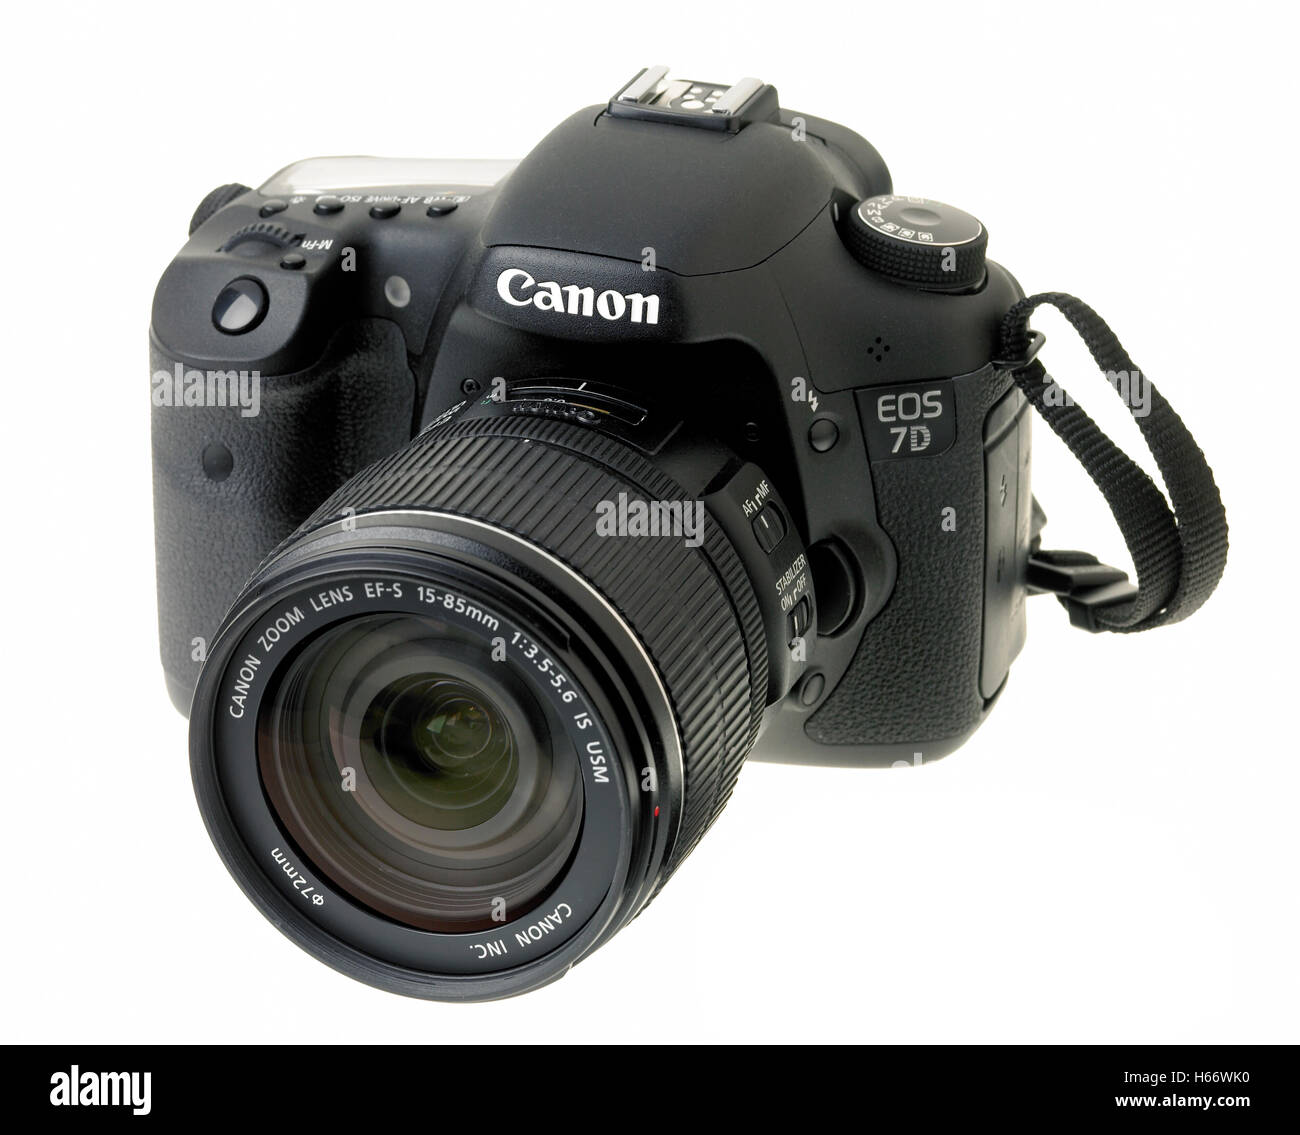 Canon Eos 7d digital SLR camera - Stock Image